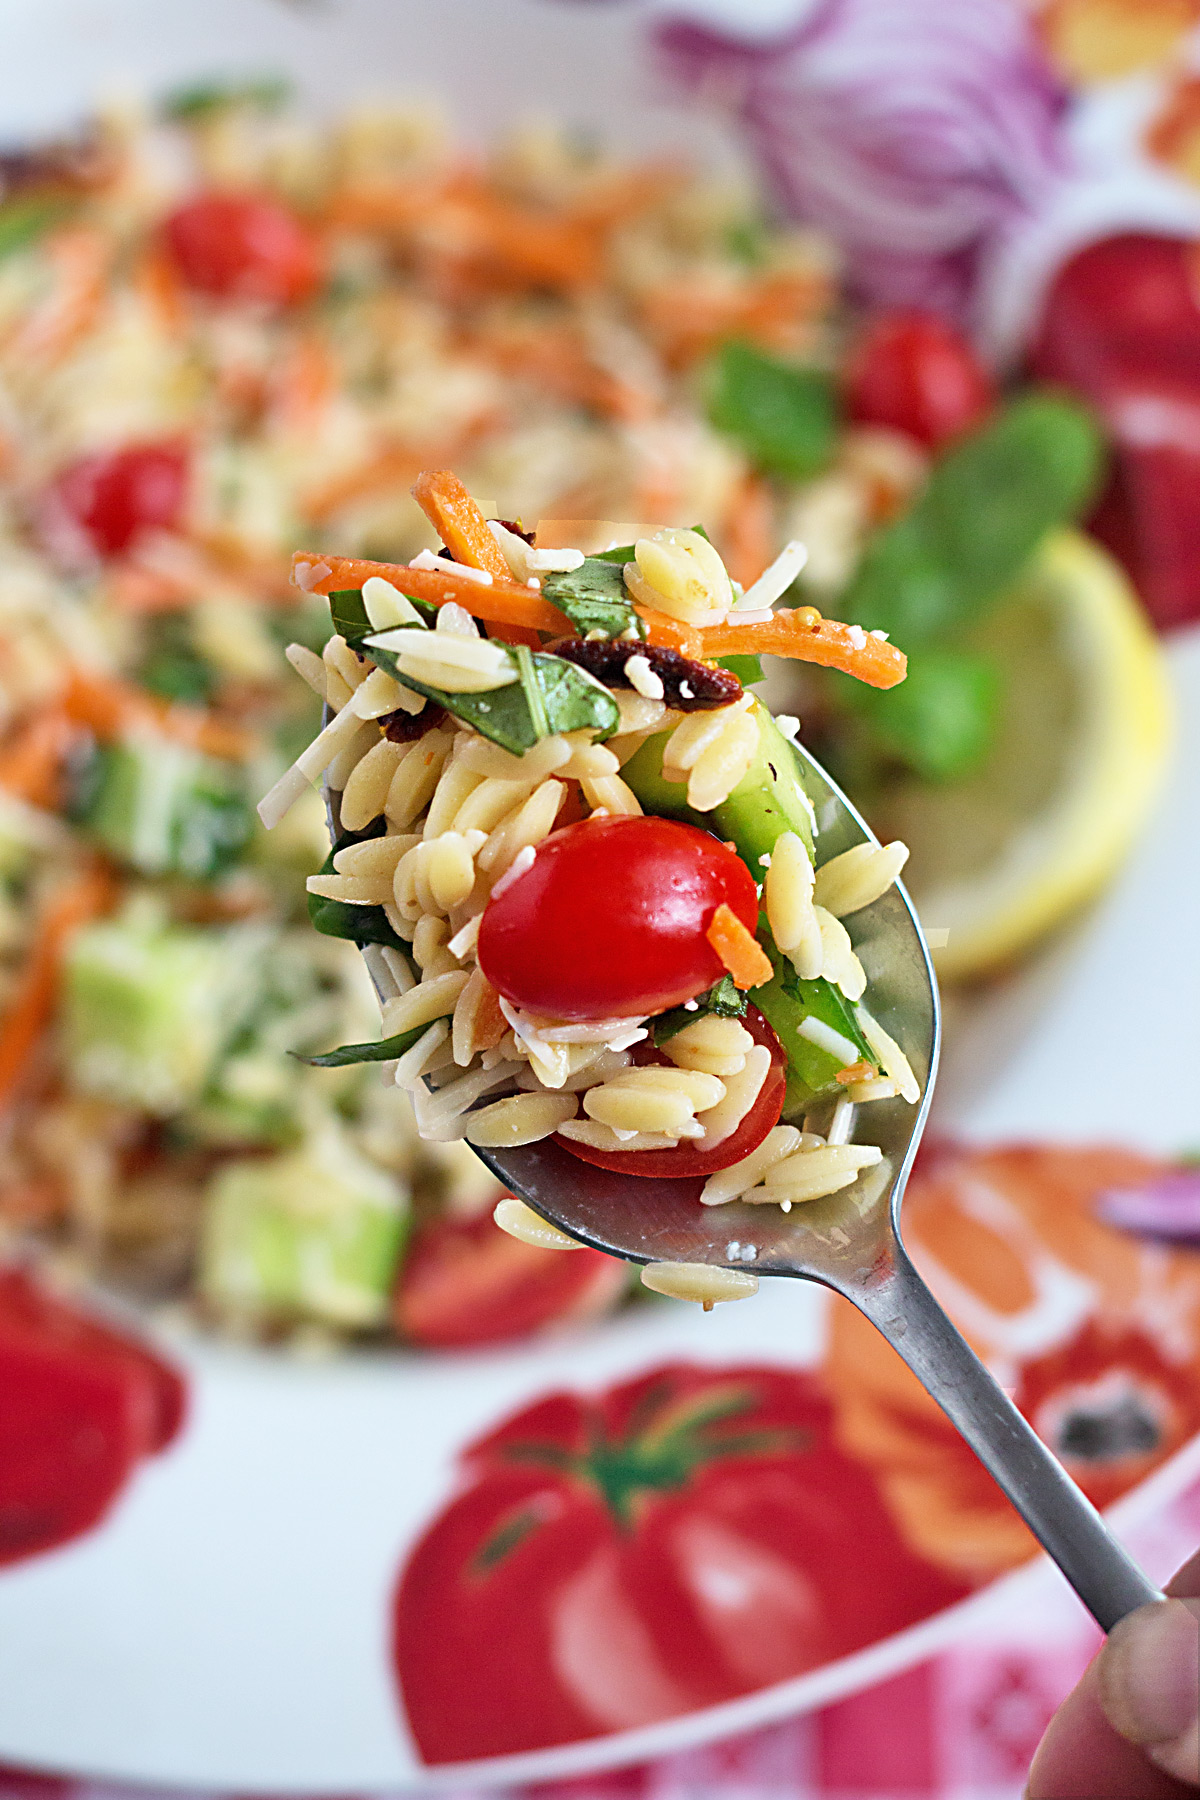 Summer Vegetable Orzo Pasta Salad - This side dish recipe has fresh veggies, vibrant colors, and an explosion of flavor, just like fireworks!